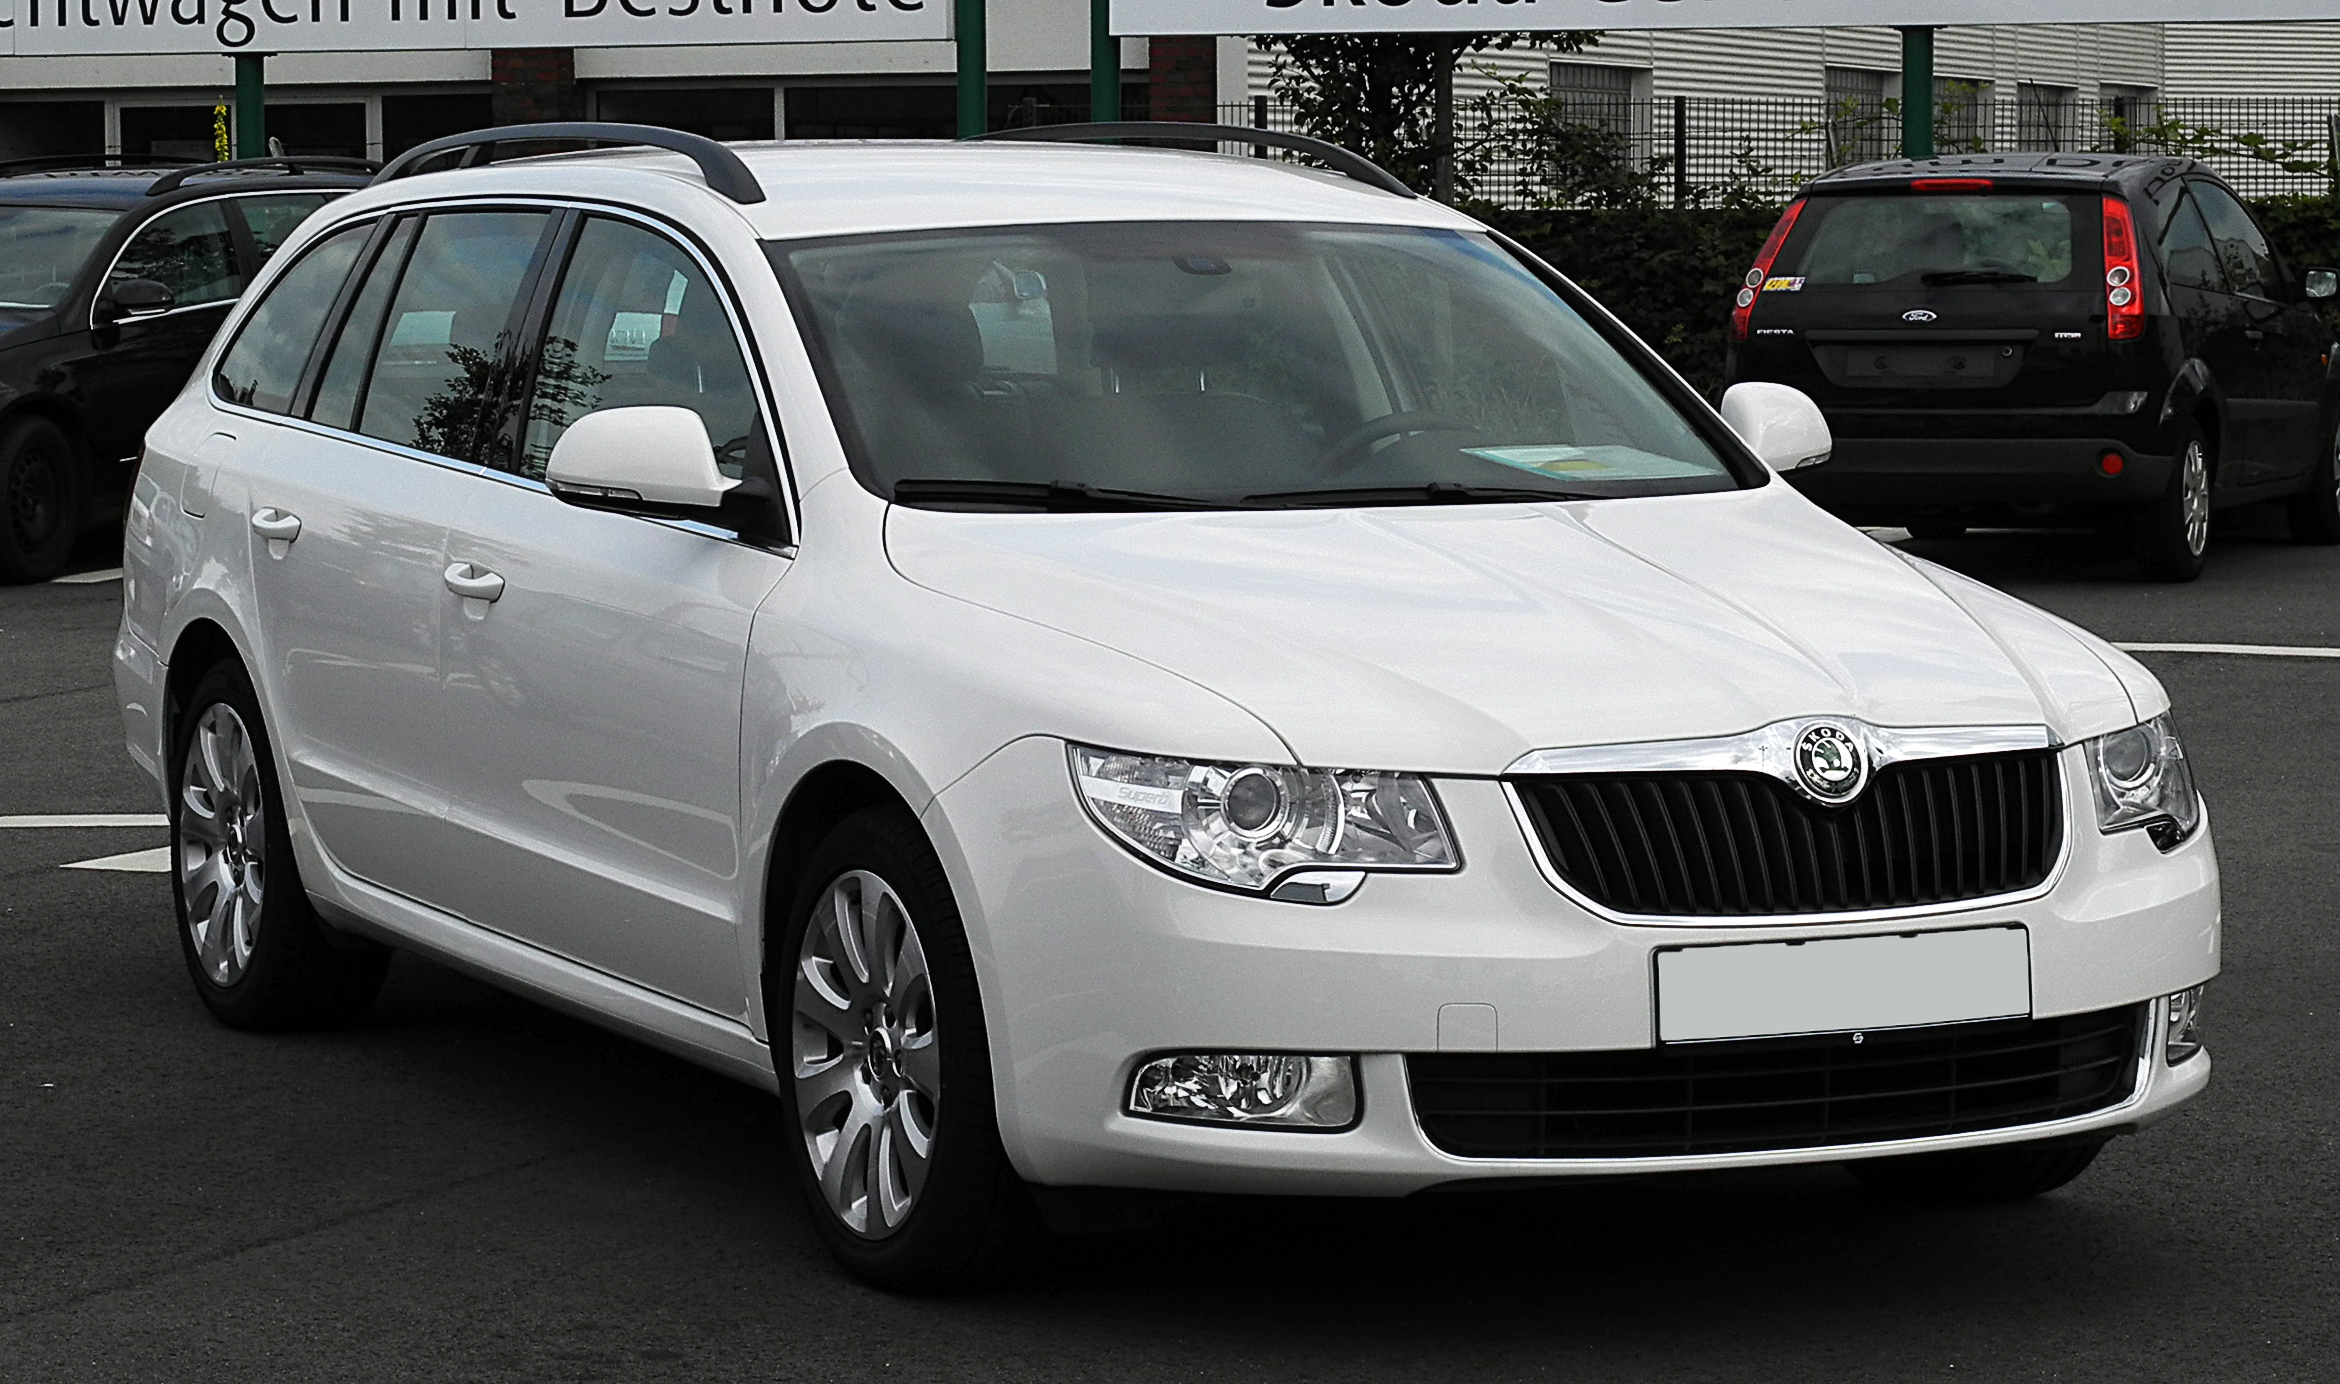 2011 skoda superb combi 2 0 tdi 4x4 related infomation specifications weili automotive network. Black Bedroom Furniture Sets. Home Design Ideas